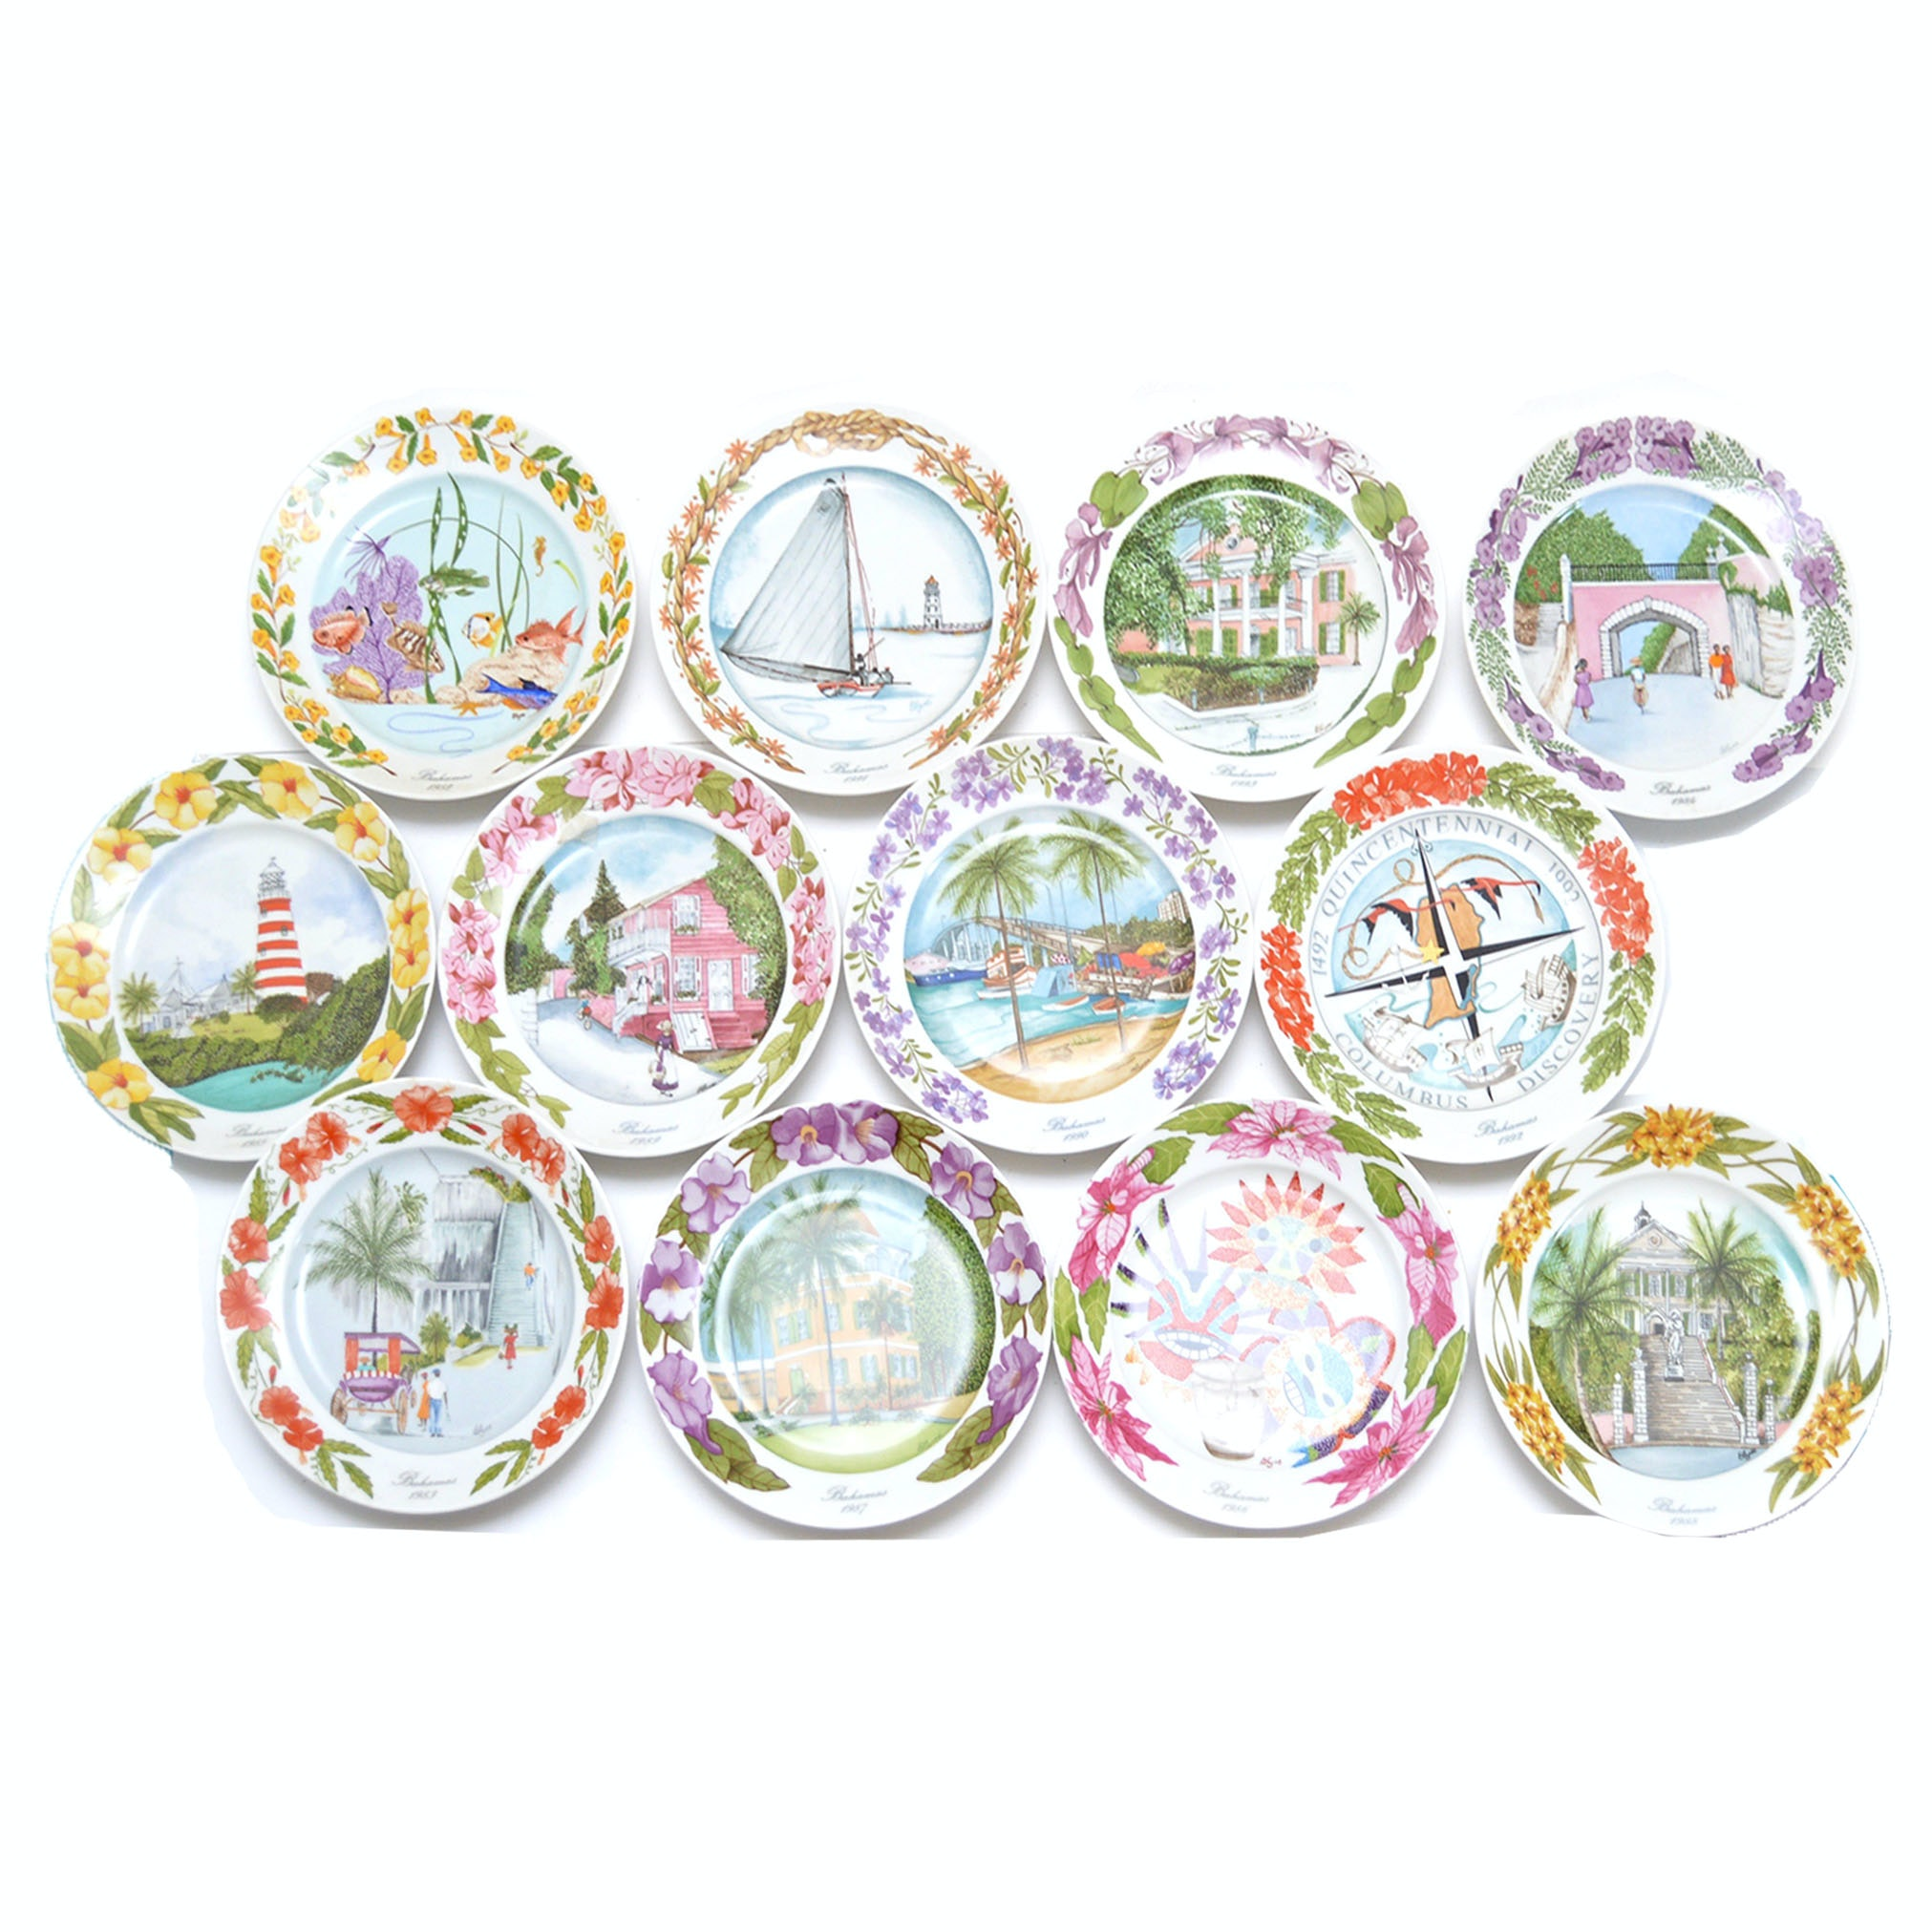 Collection of Bahama Plates by Kaiser